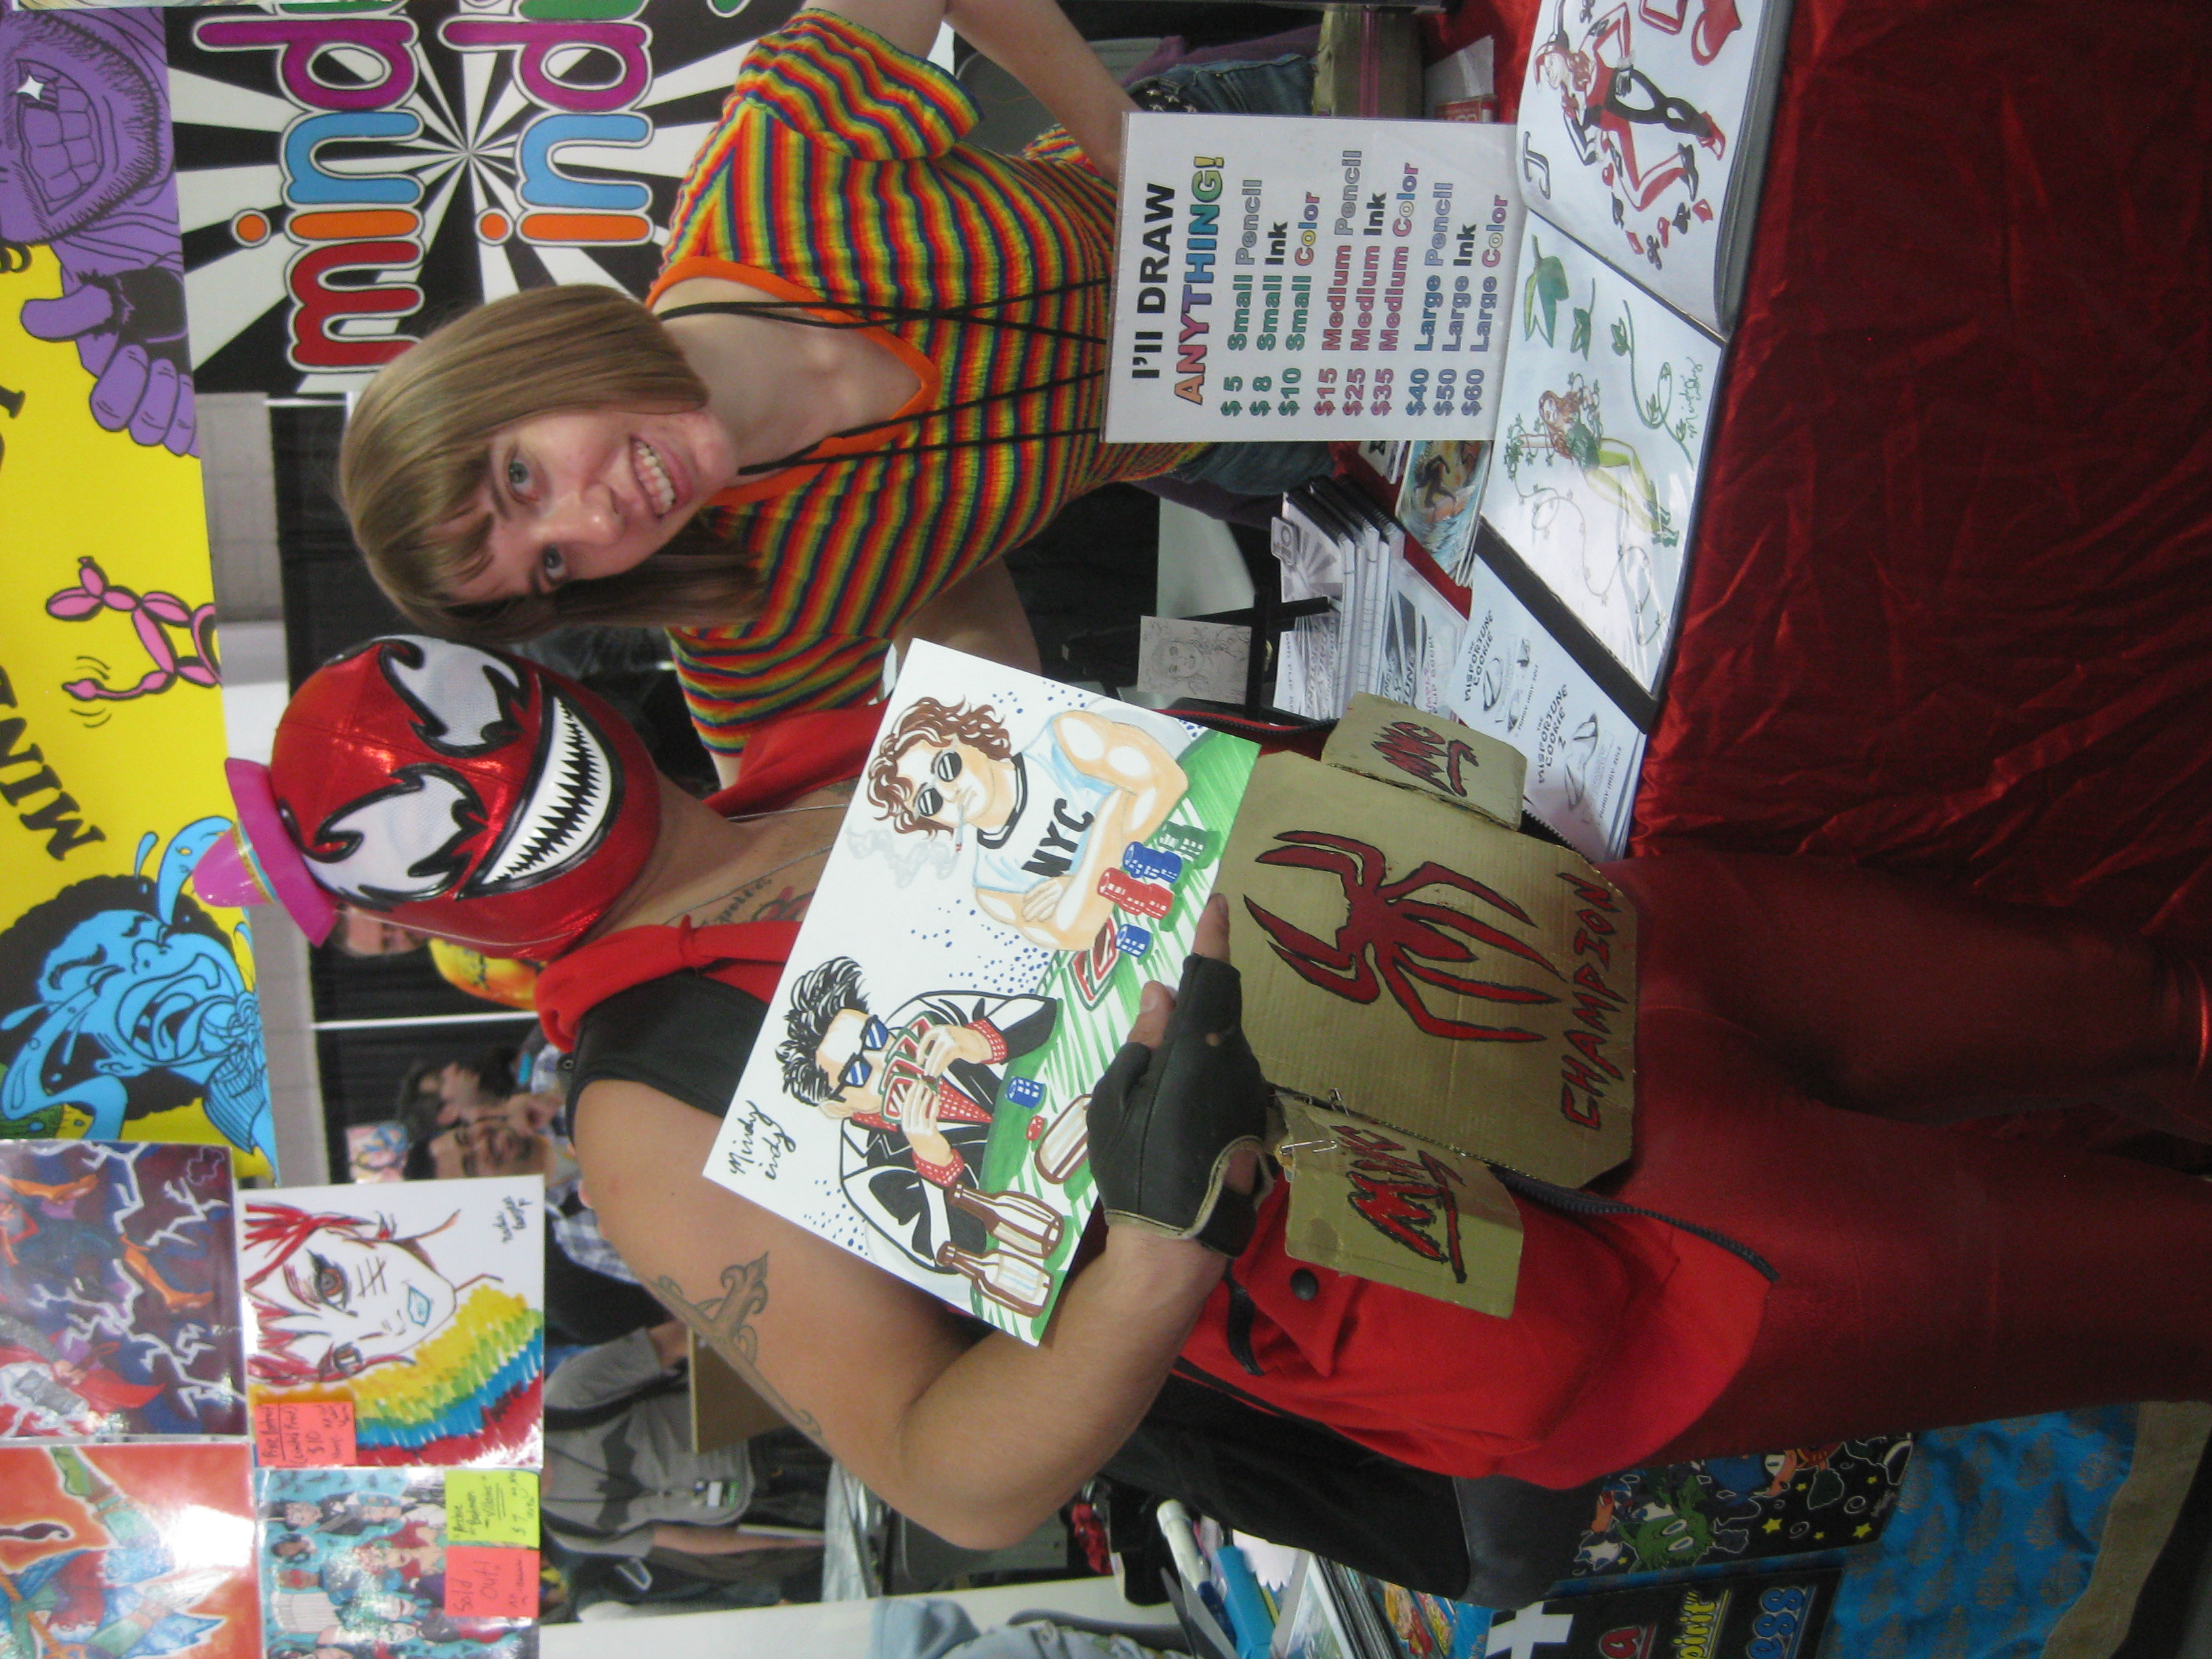 He loved the drawing so much!  And had a super cool costume!